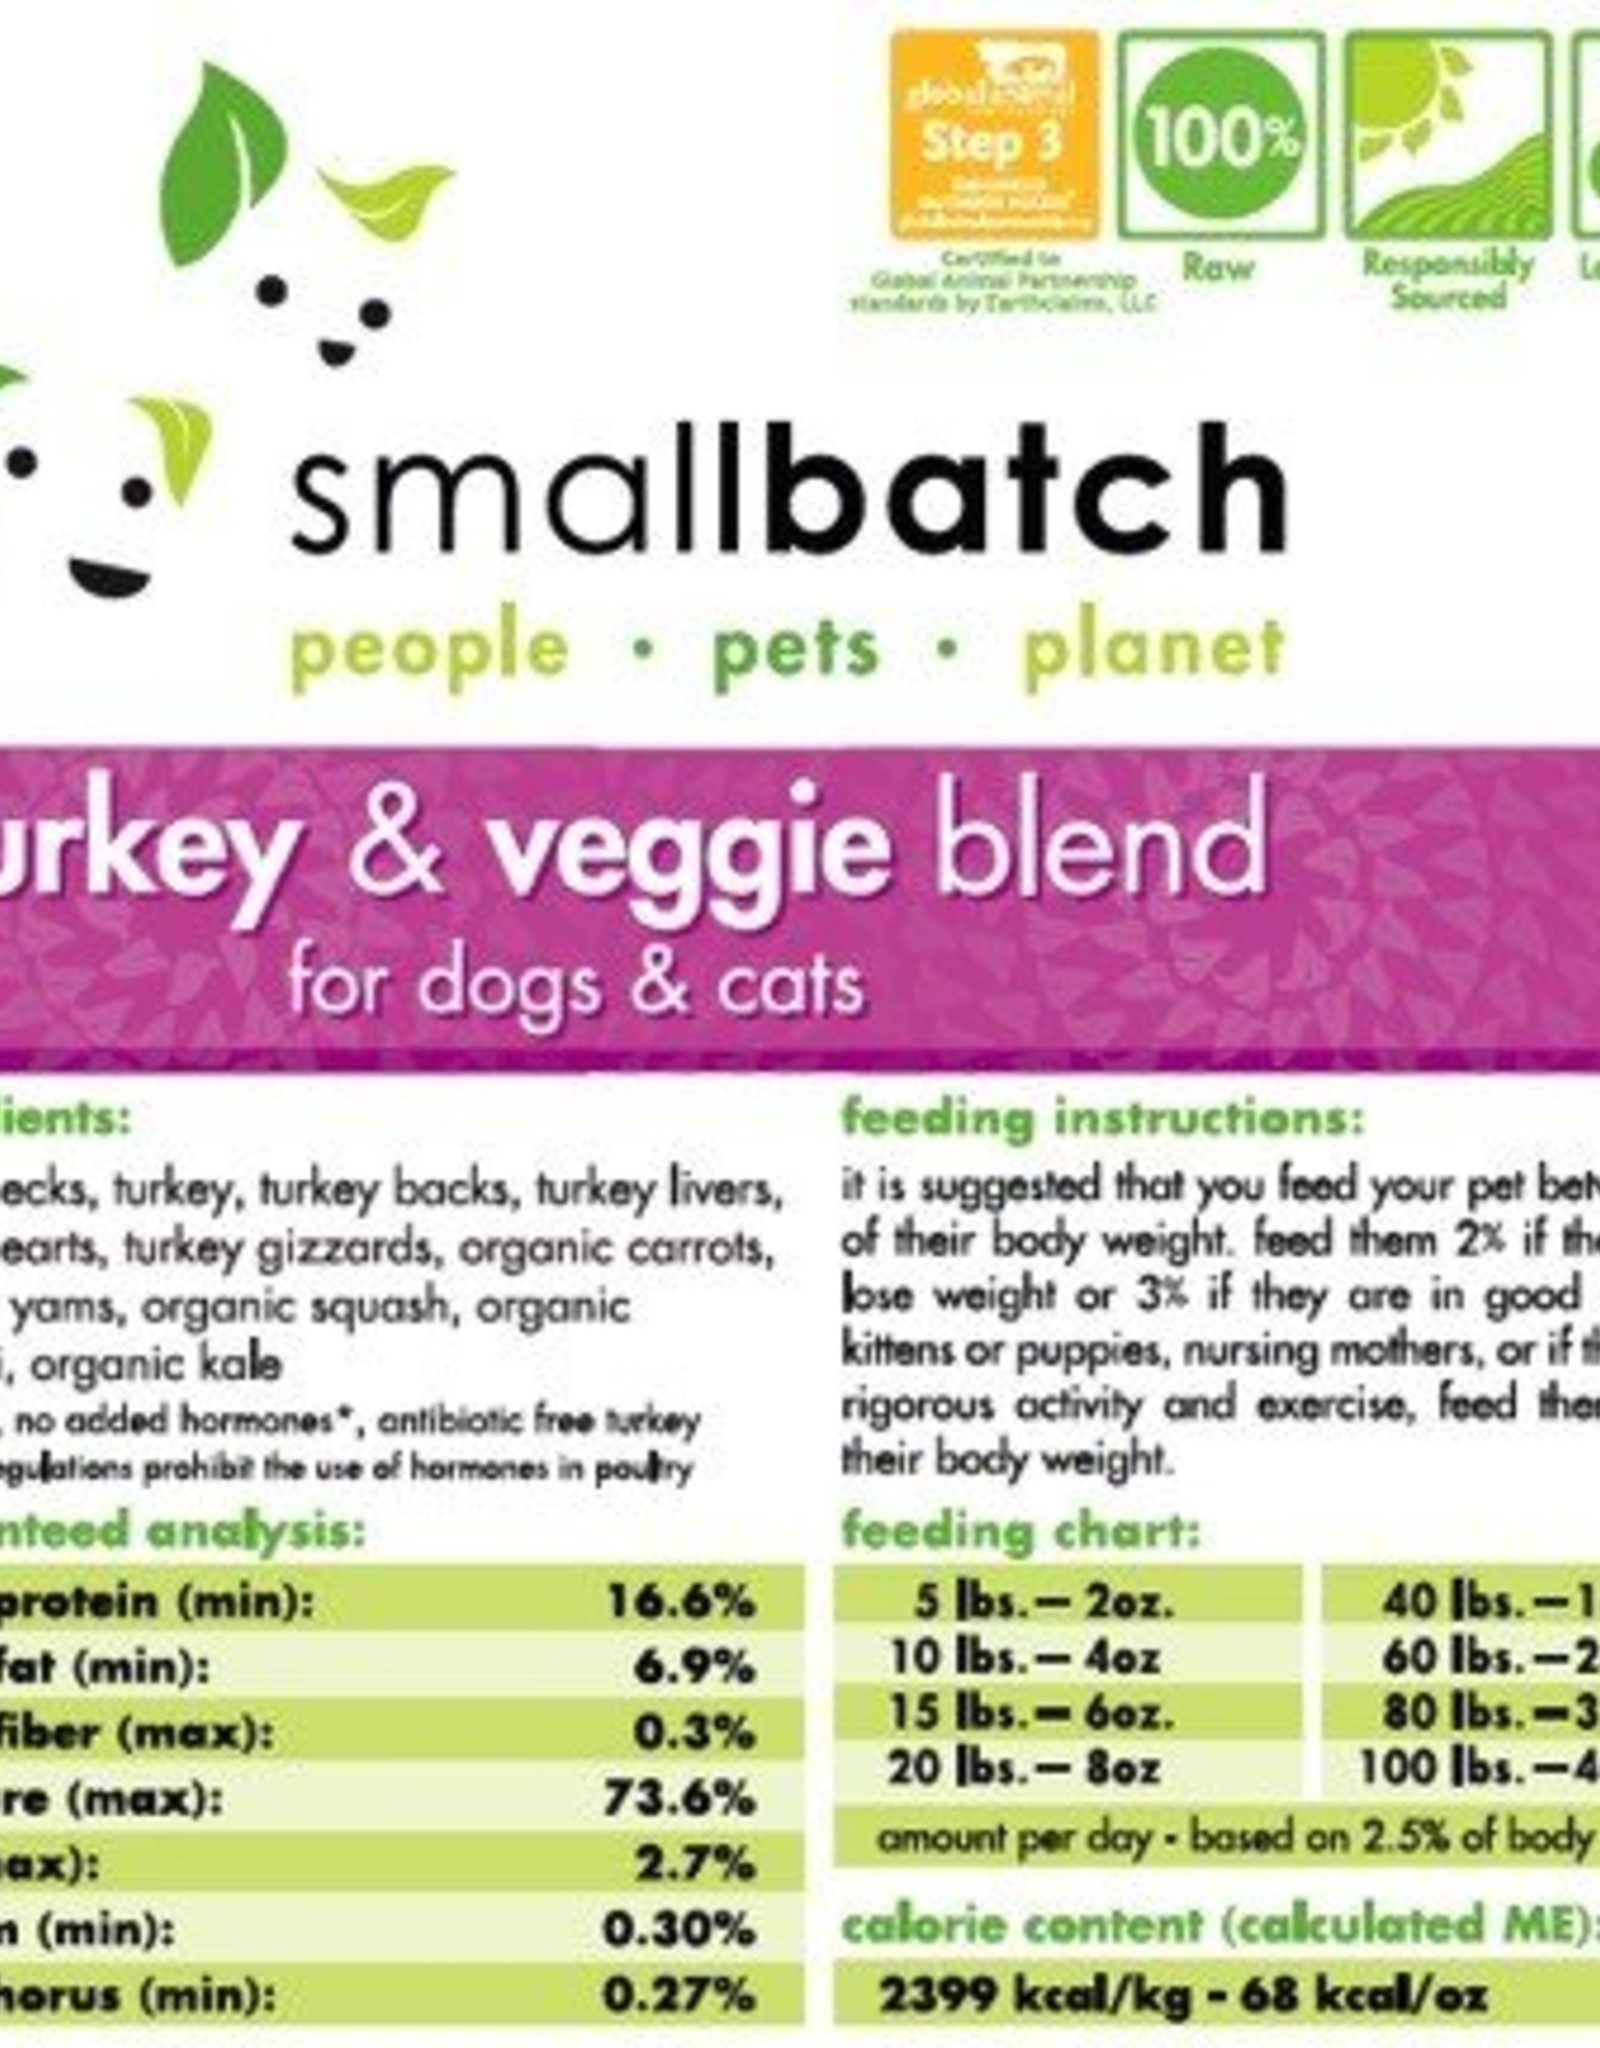 Smallbatch SALE - Smallbatch Turkey Vegetable Blend 2lb